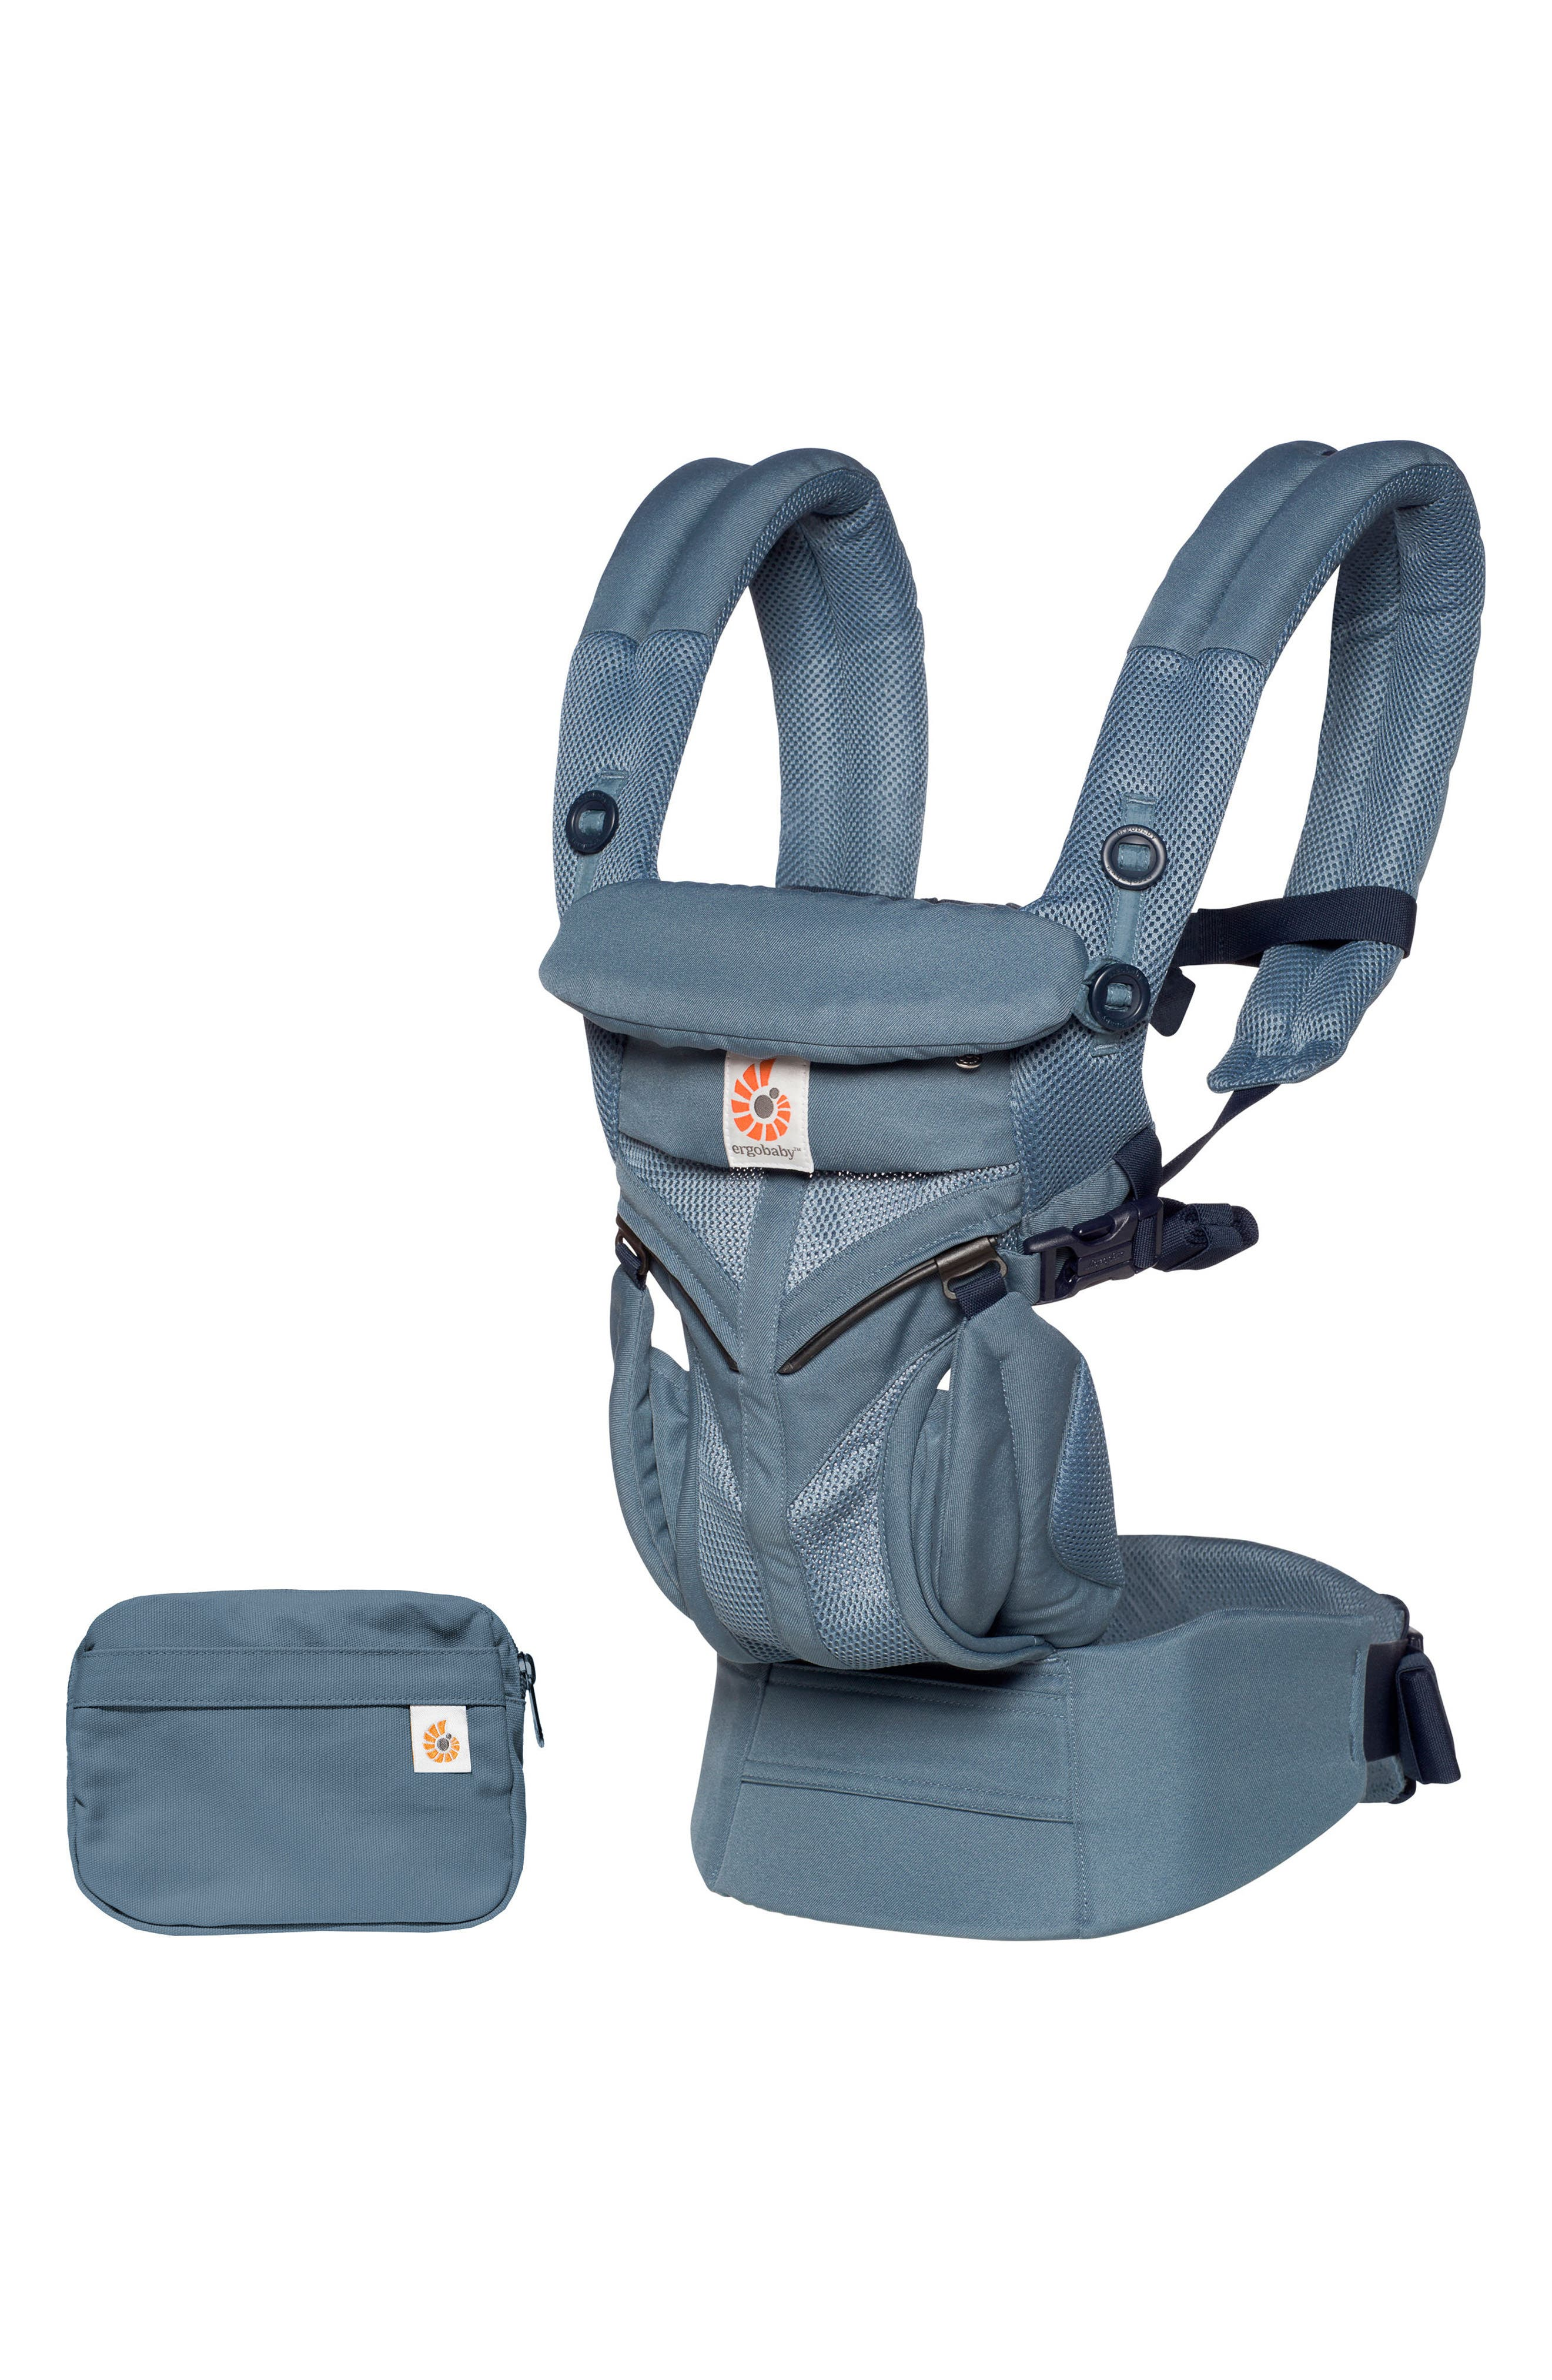 Main Image - ERGObaby Omni 360 - Cool Air Baby Carrier